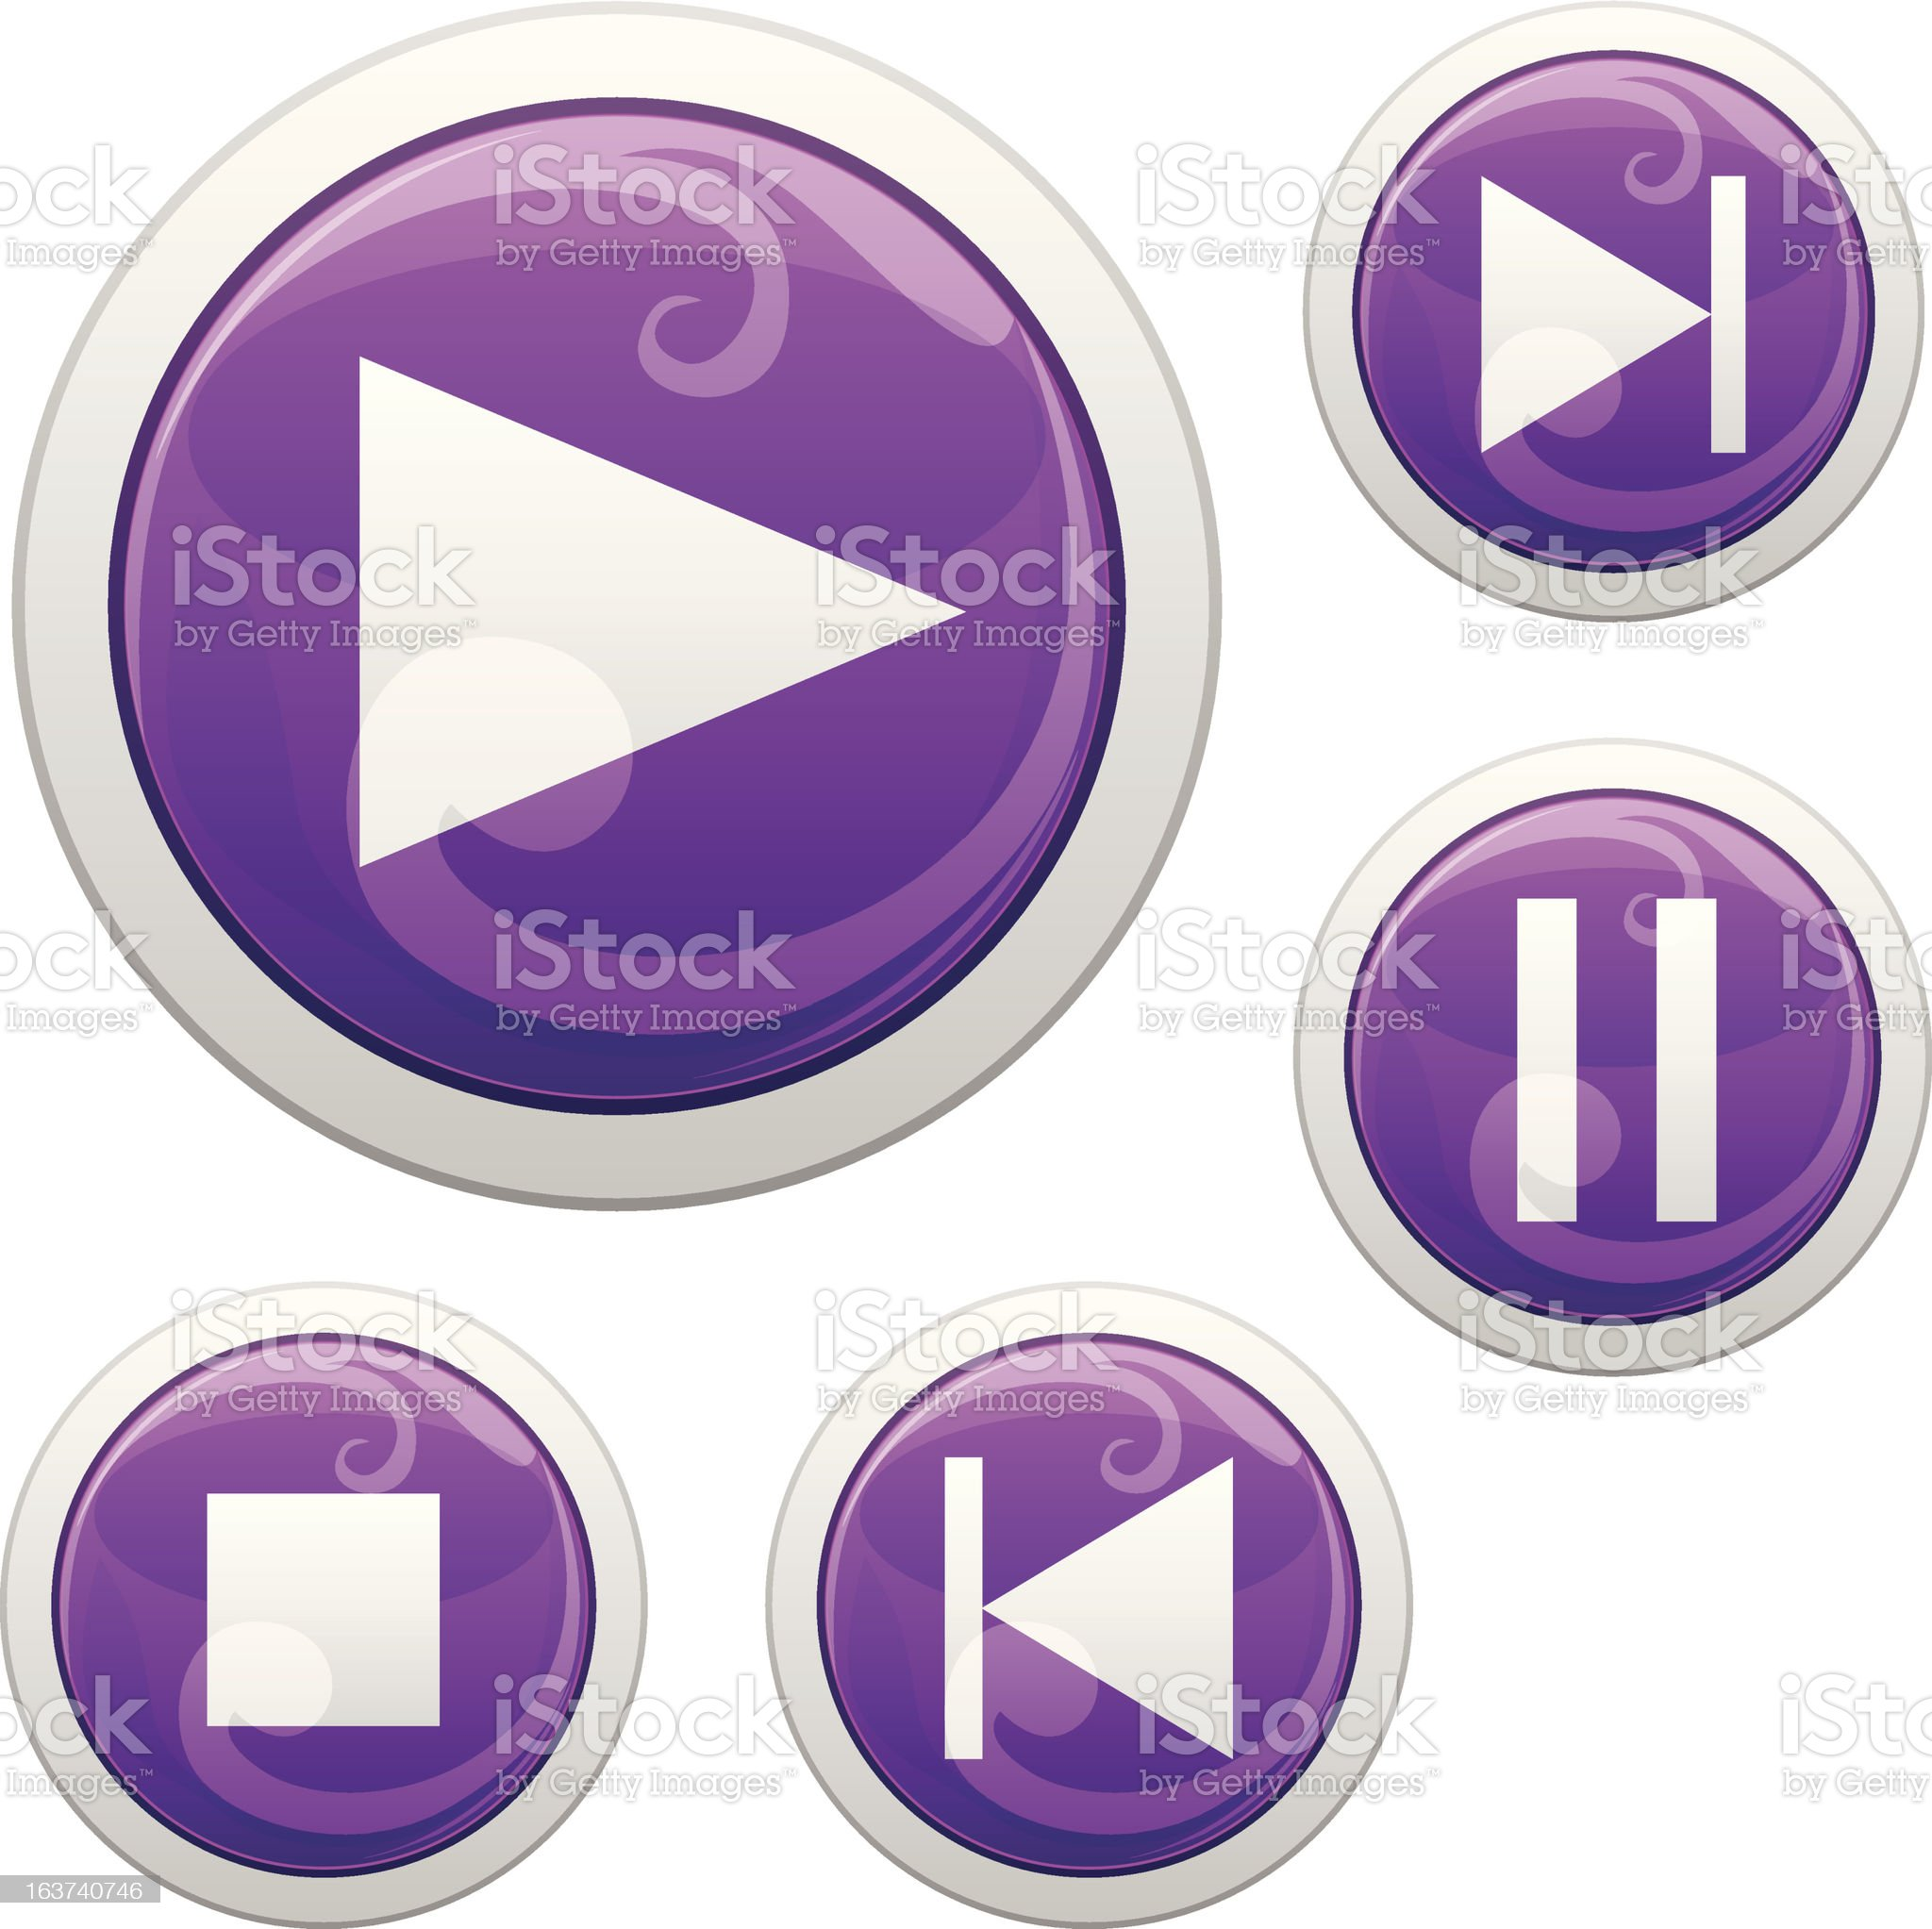 media buttons royalty-free stock vector art